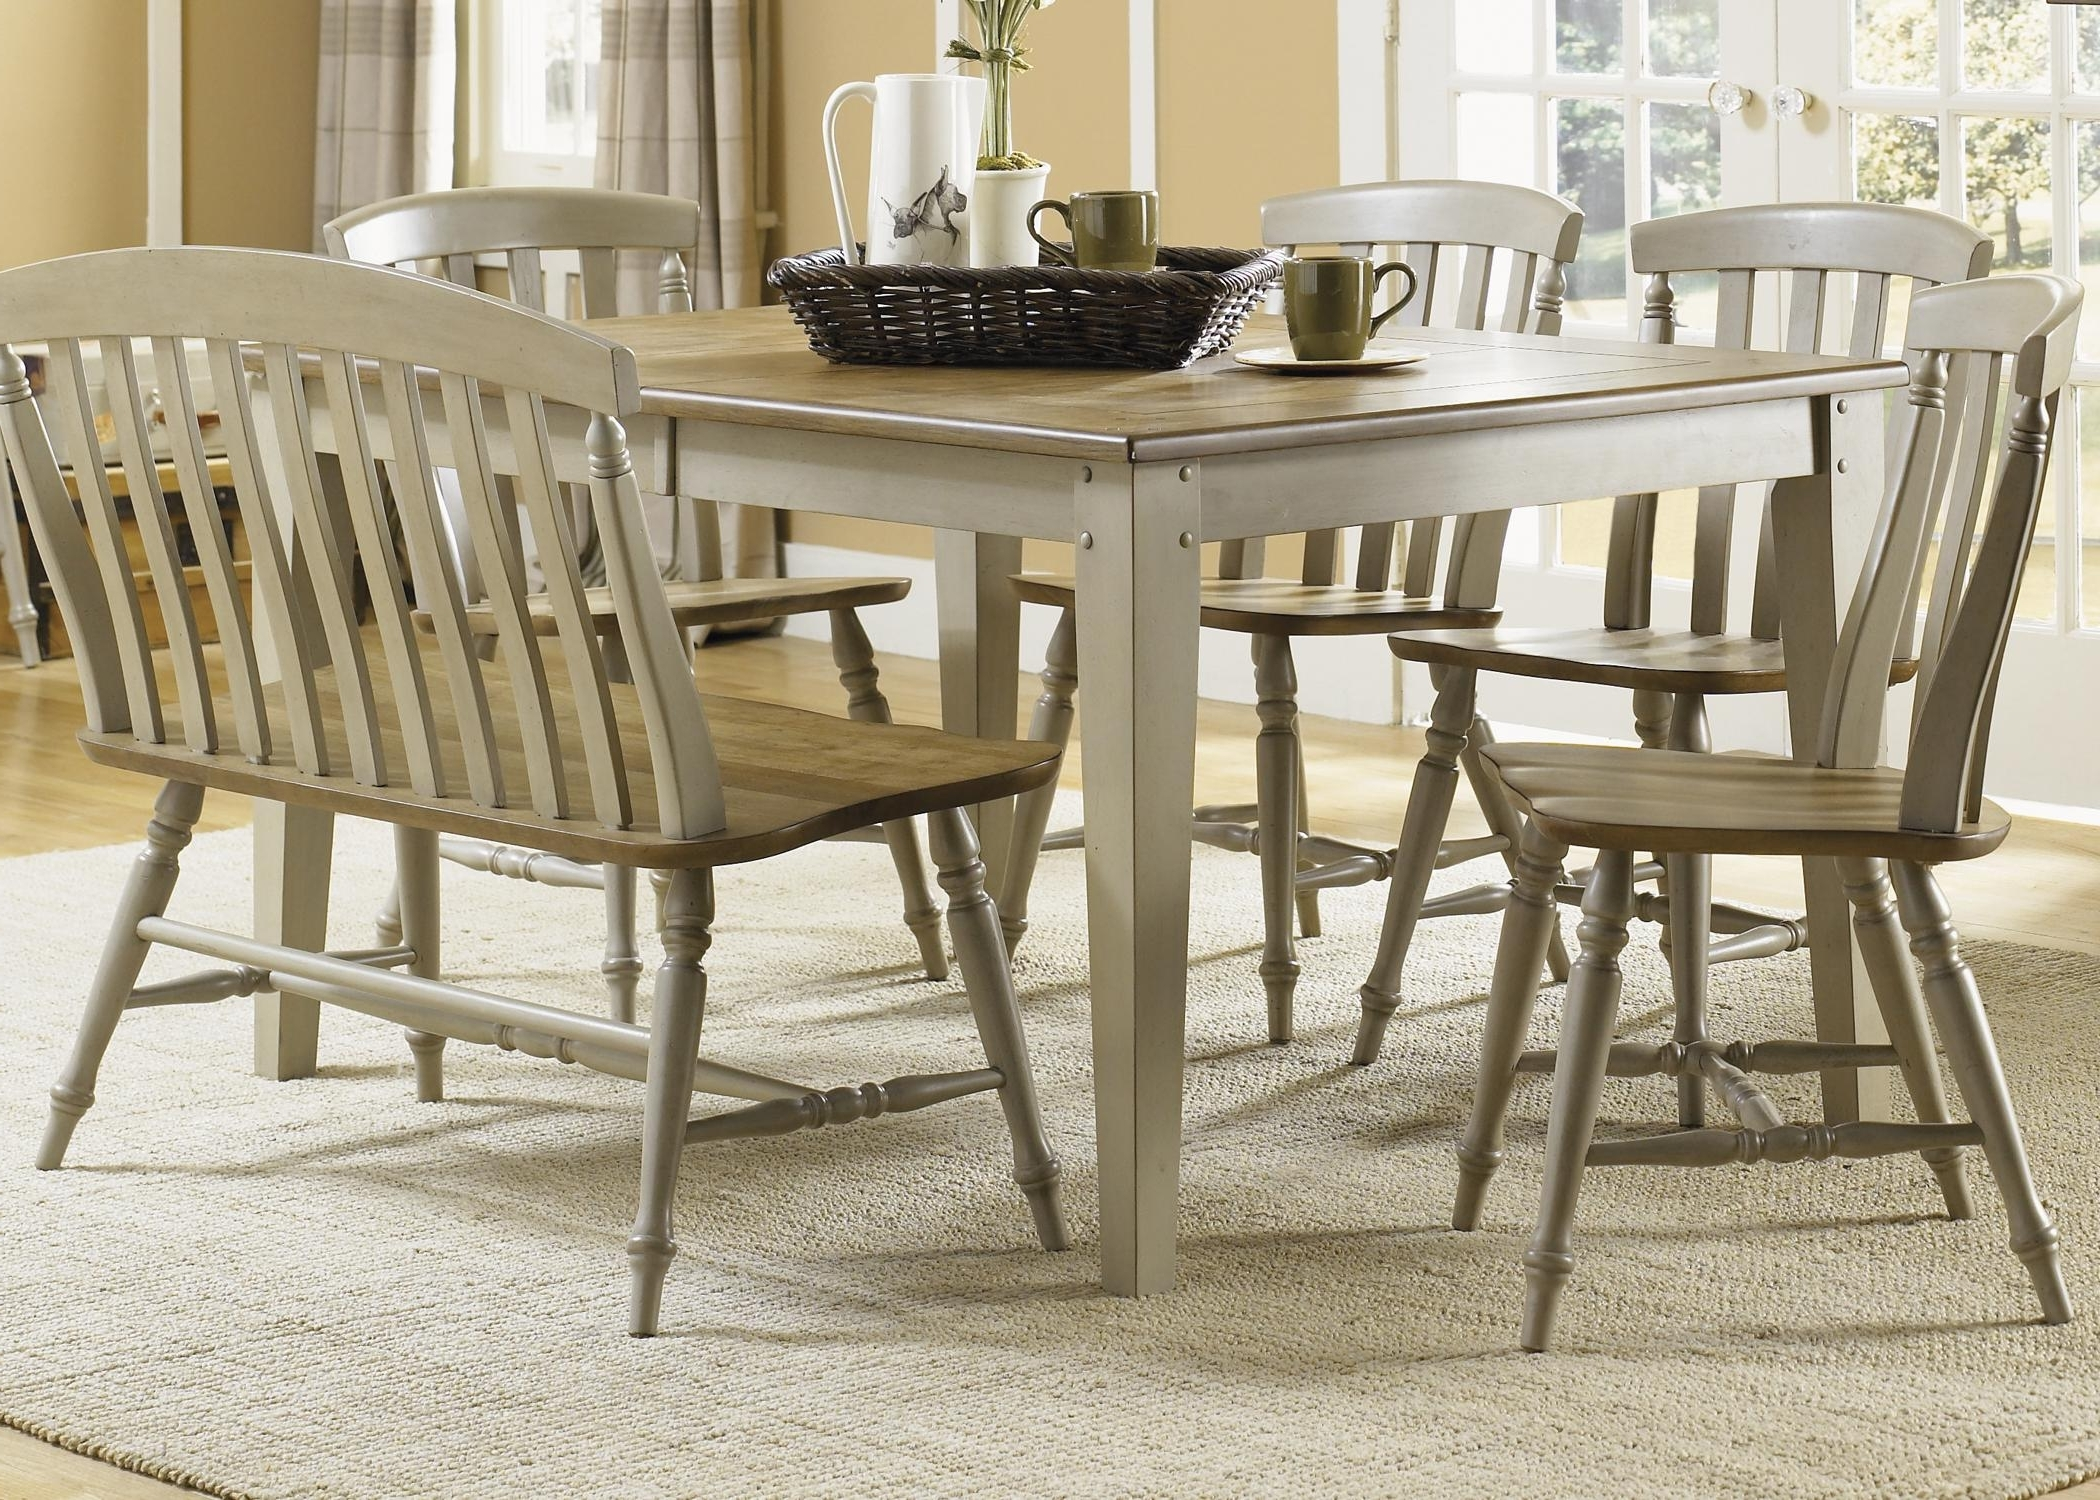 Six Piece Dining Table Set With Chairs And Benchliberty Pertaining To Recent 6 Seat Dining Table Sets (View 18 of 25)